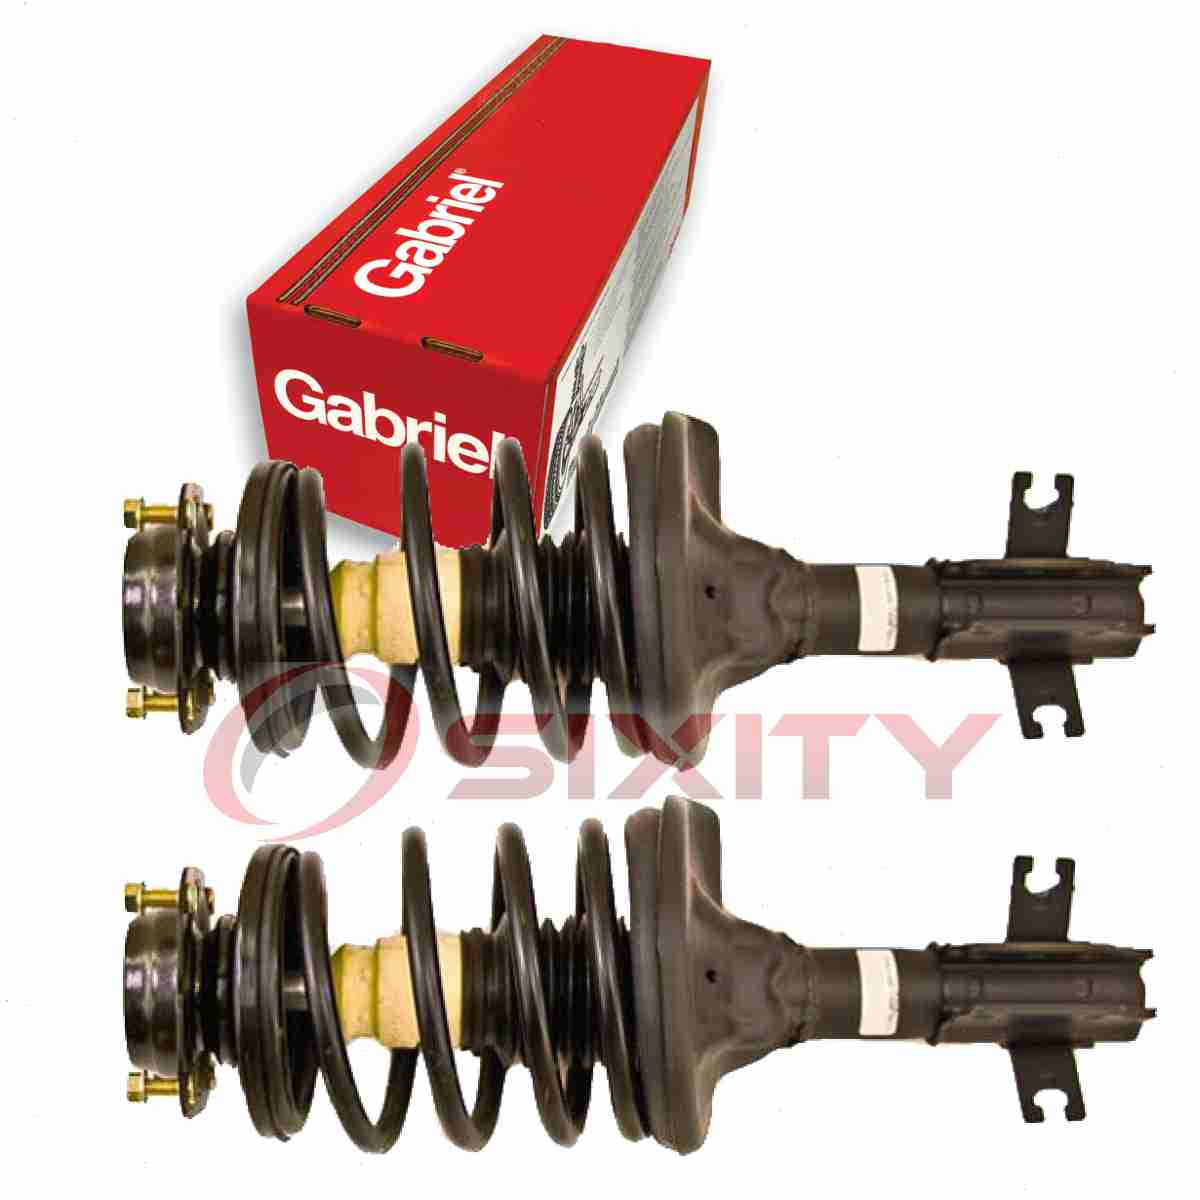 Gabriel Front Right Strut: 2 Pc Gabriel Front Fully Loaded Strut For 1997-2002 Ford